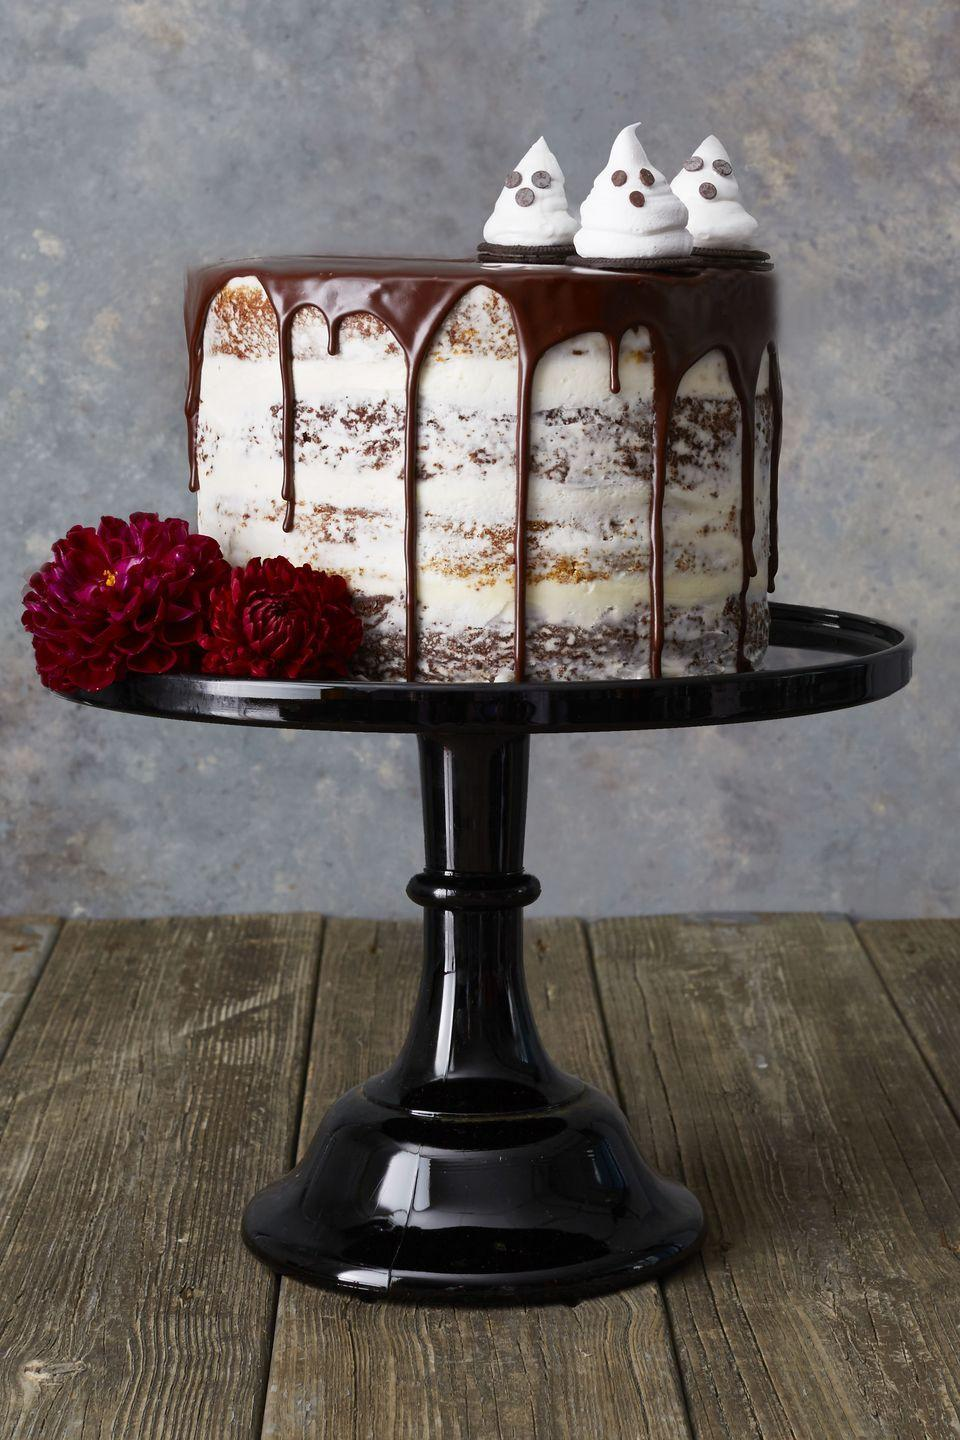 """<p>Look at that drizzle. And the cake. Well, actually, peep all of its deliciousness.</p><p><em><a href=""""https://www.goodhousekeeping.com/food-recipes/dessert/a46068/pumpkin-devils-food-layer-cake-recipe/"""" rel=""""nofollow noopener"""" target=""""_blank"""" data-ylk=""""slk:Get the recipe for Pumpkin and Devil's Food Layer Cake »"""" class=""""link rapid-noclick-resp"""">Get the recipe for Pumpkin and Devil's Food Layer Cake »</a></em> </p>"""